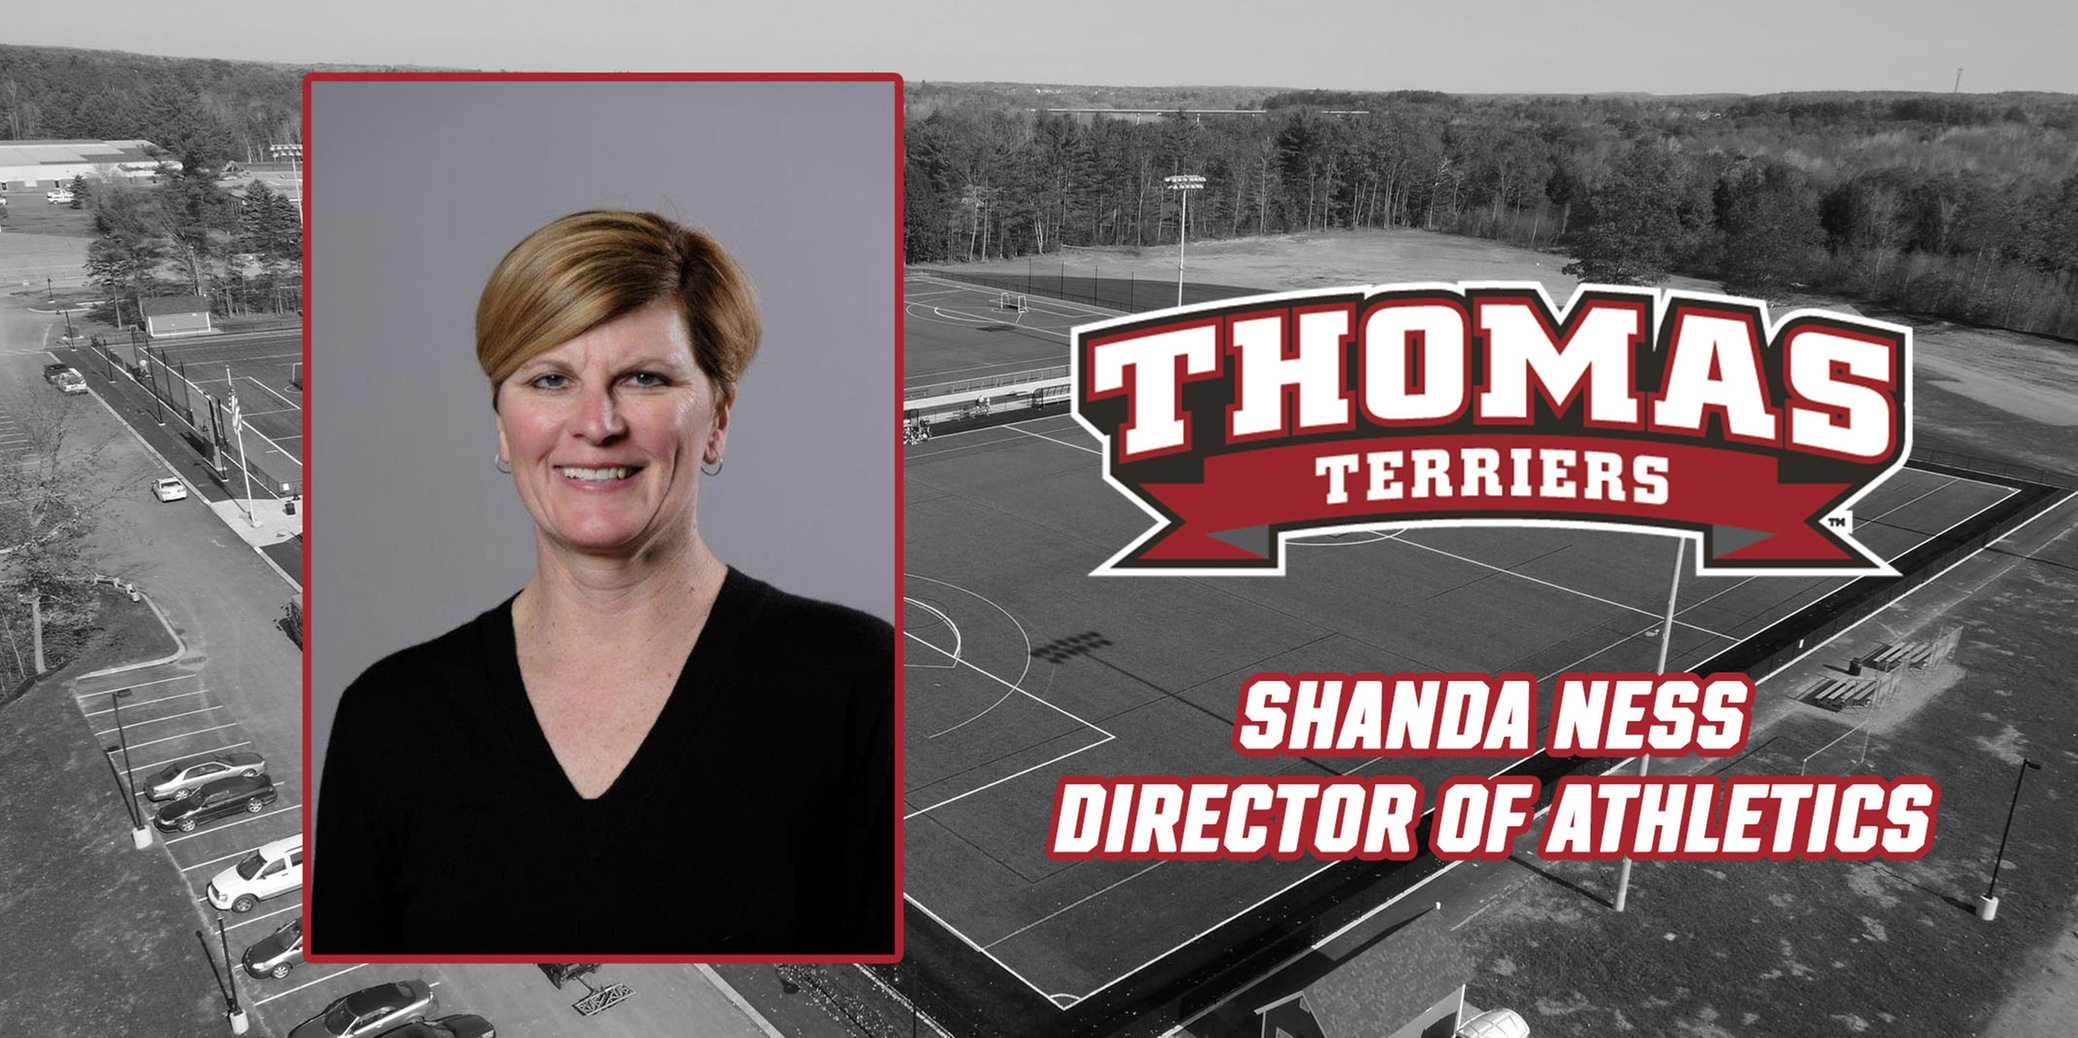 Shanda Ness Named Director of Athletics at Thomas